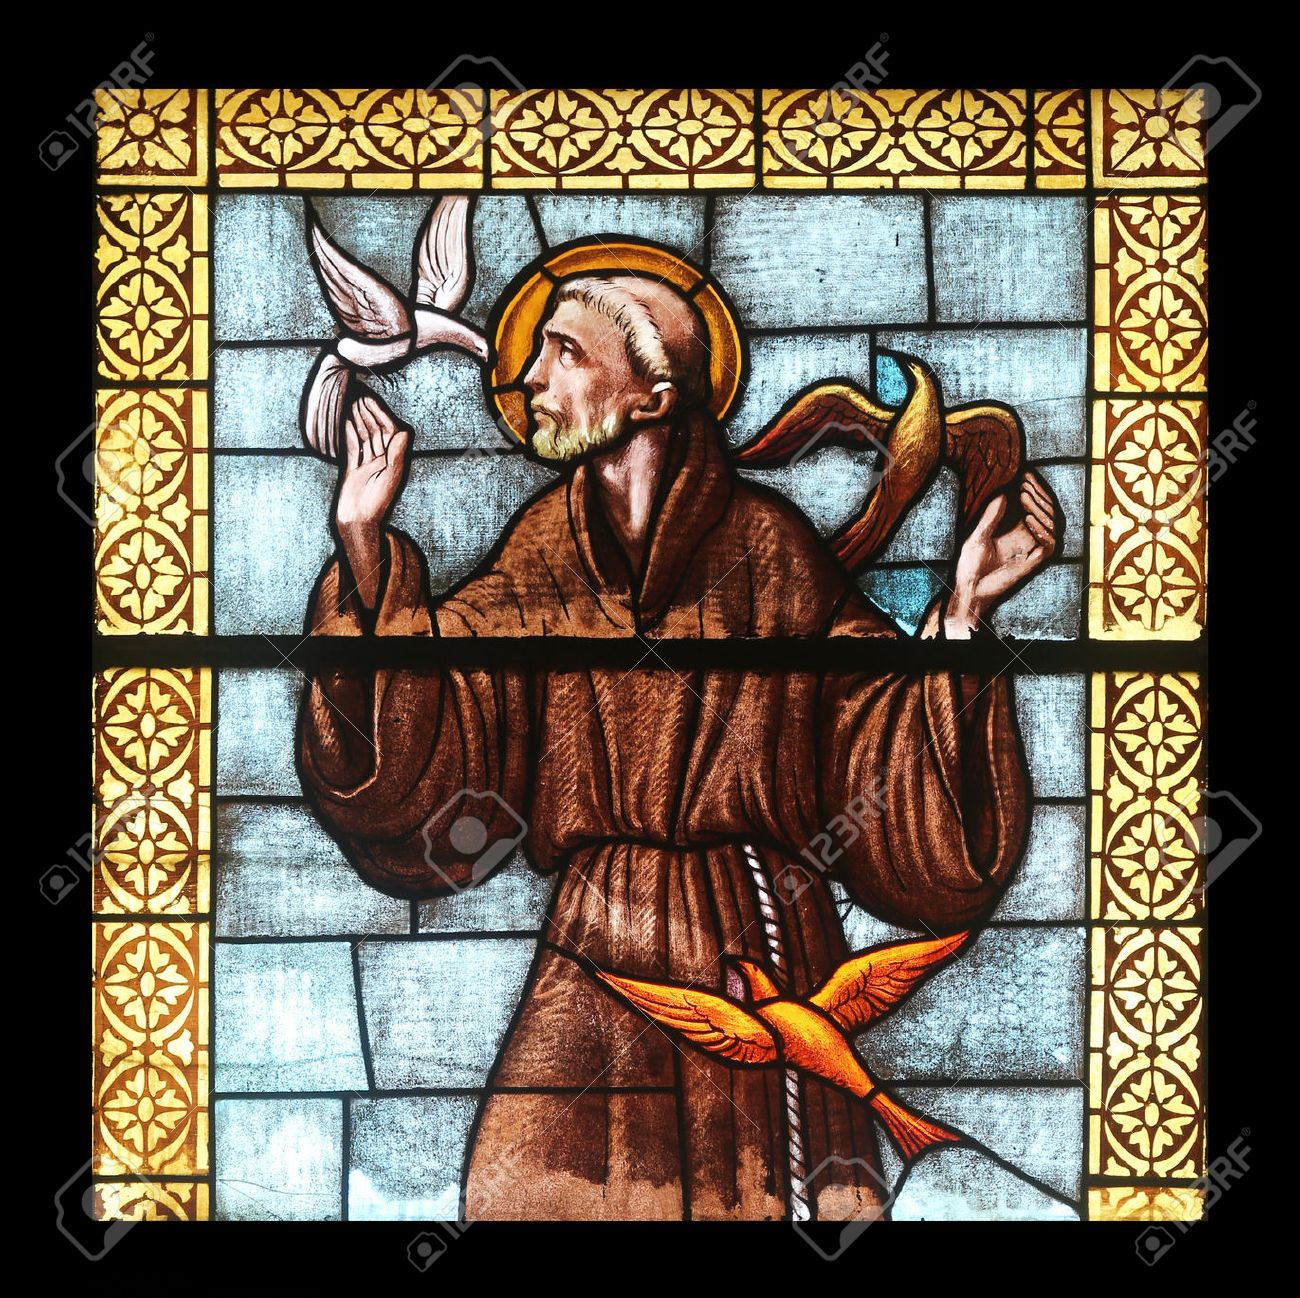 Saint Francis of Assi, stained glass window in the church of St  James the Greater in Porto Azzurro, Elba, Italy Stock Photo - 29224074